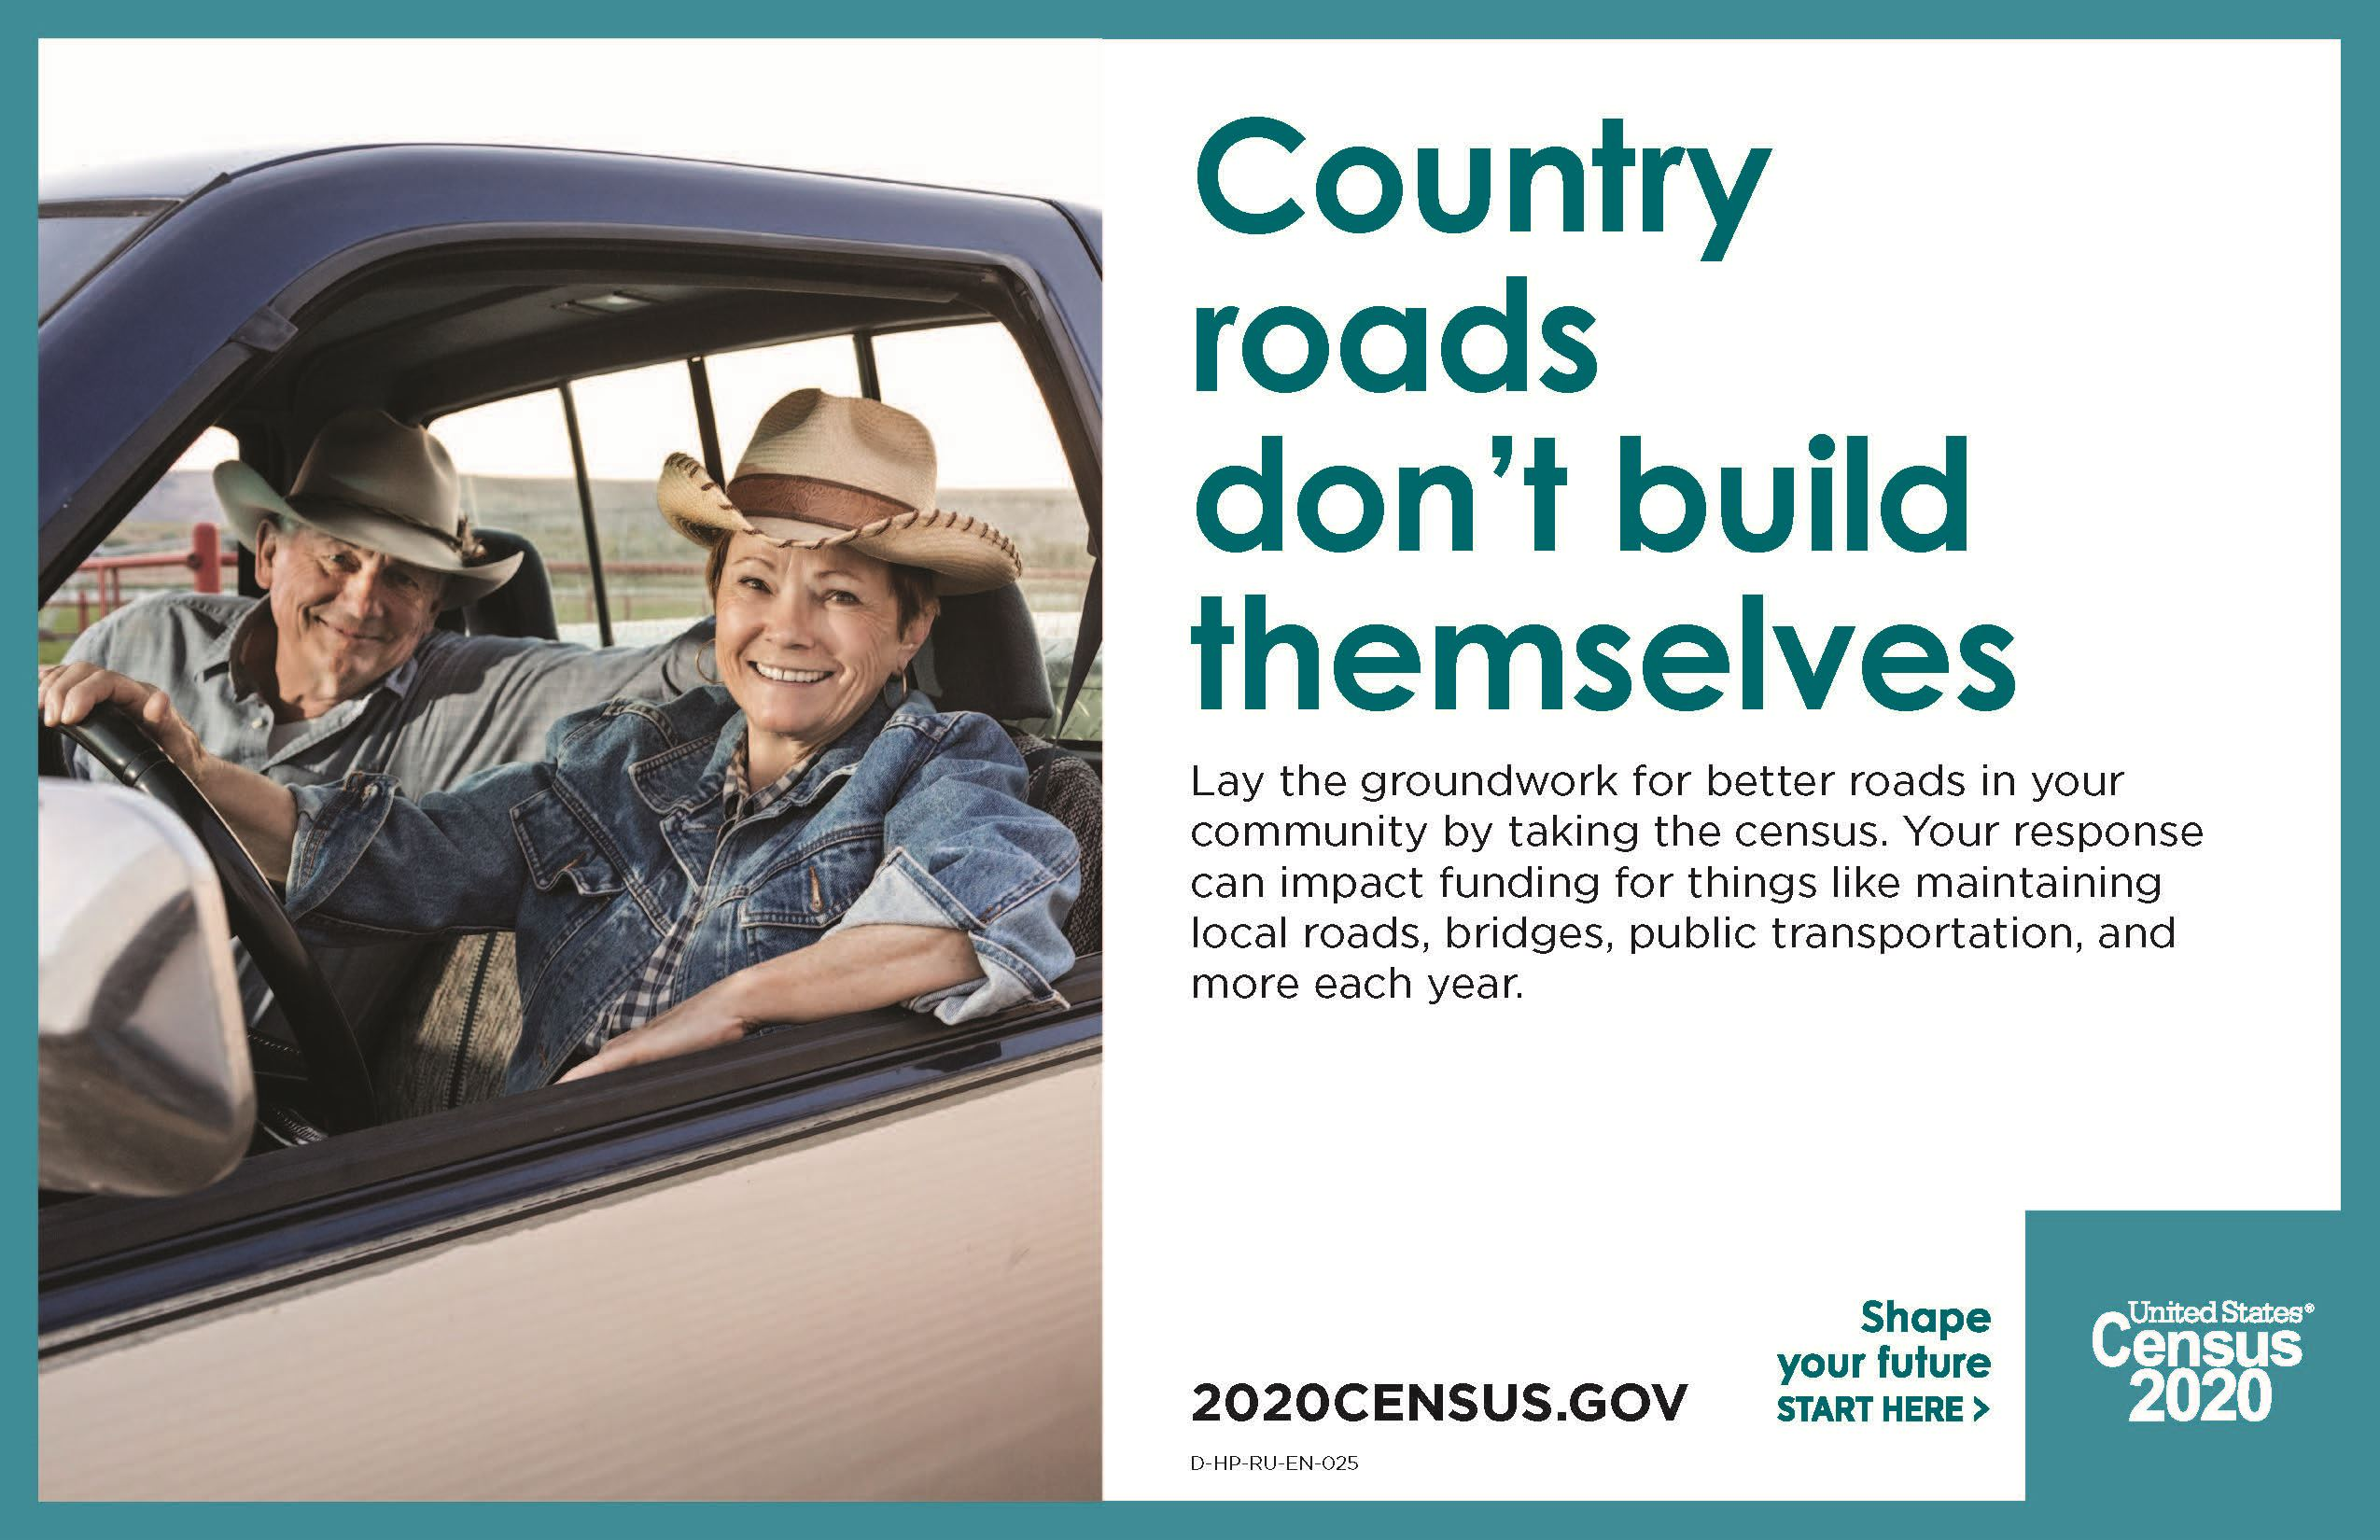 "Couple in a truck with the words 'County roads don't build themselves"". 2020census.gov"